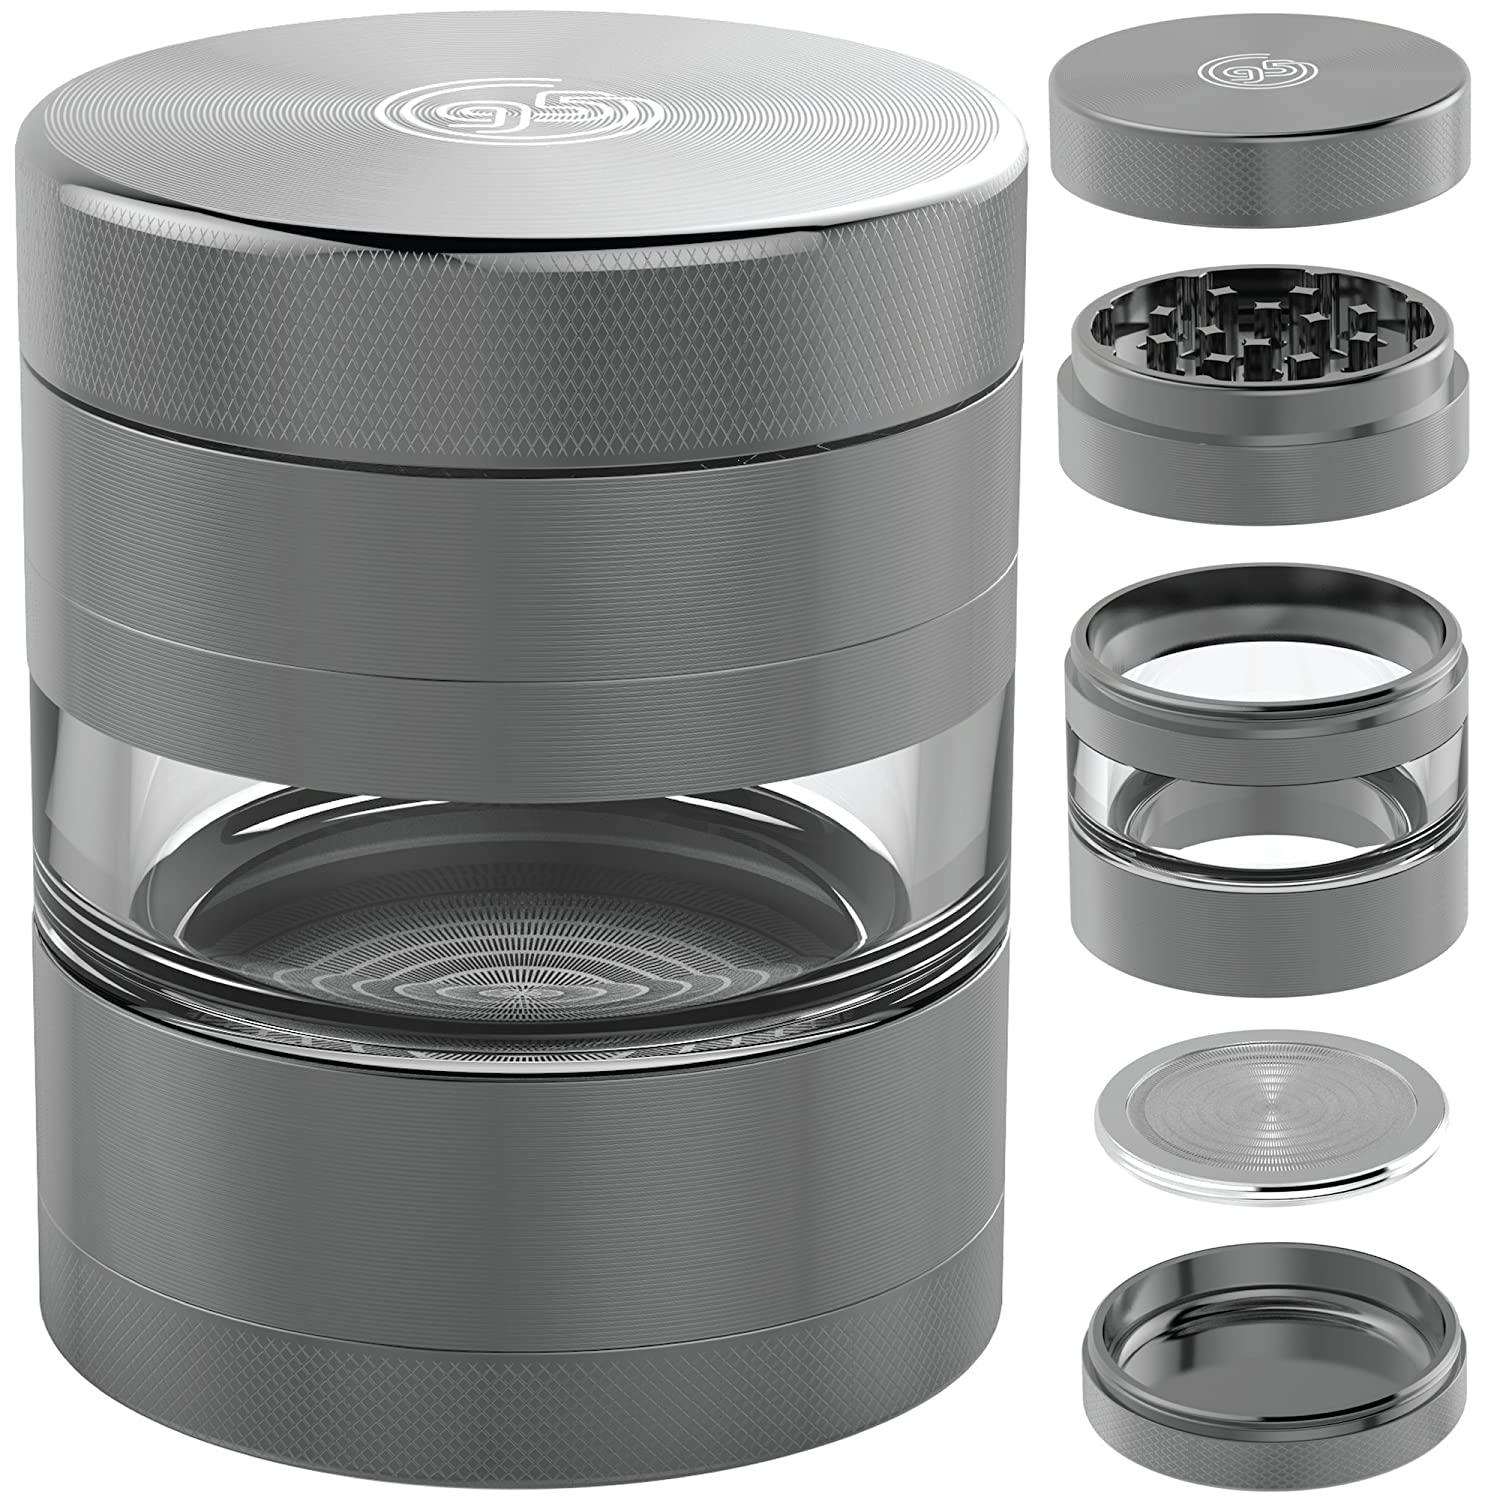 2.5 Inch 5 Piece Herb & Spice Grinder with Best Pollen Catcher for Keef – Includes REMOVABLE Stainless Steel Screen/Kief Scraper/Travel Bag (Gunmetal) 9to5 Grinders COMINHKPR89559